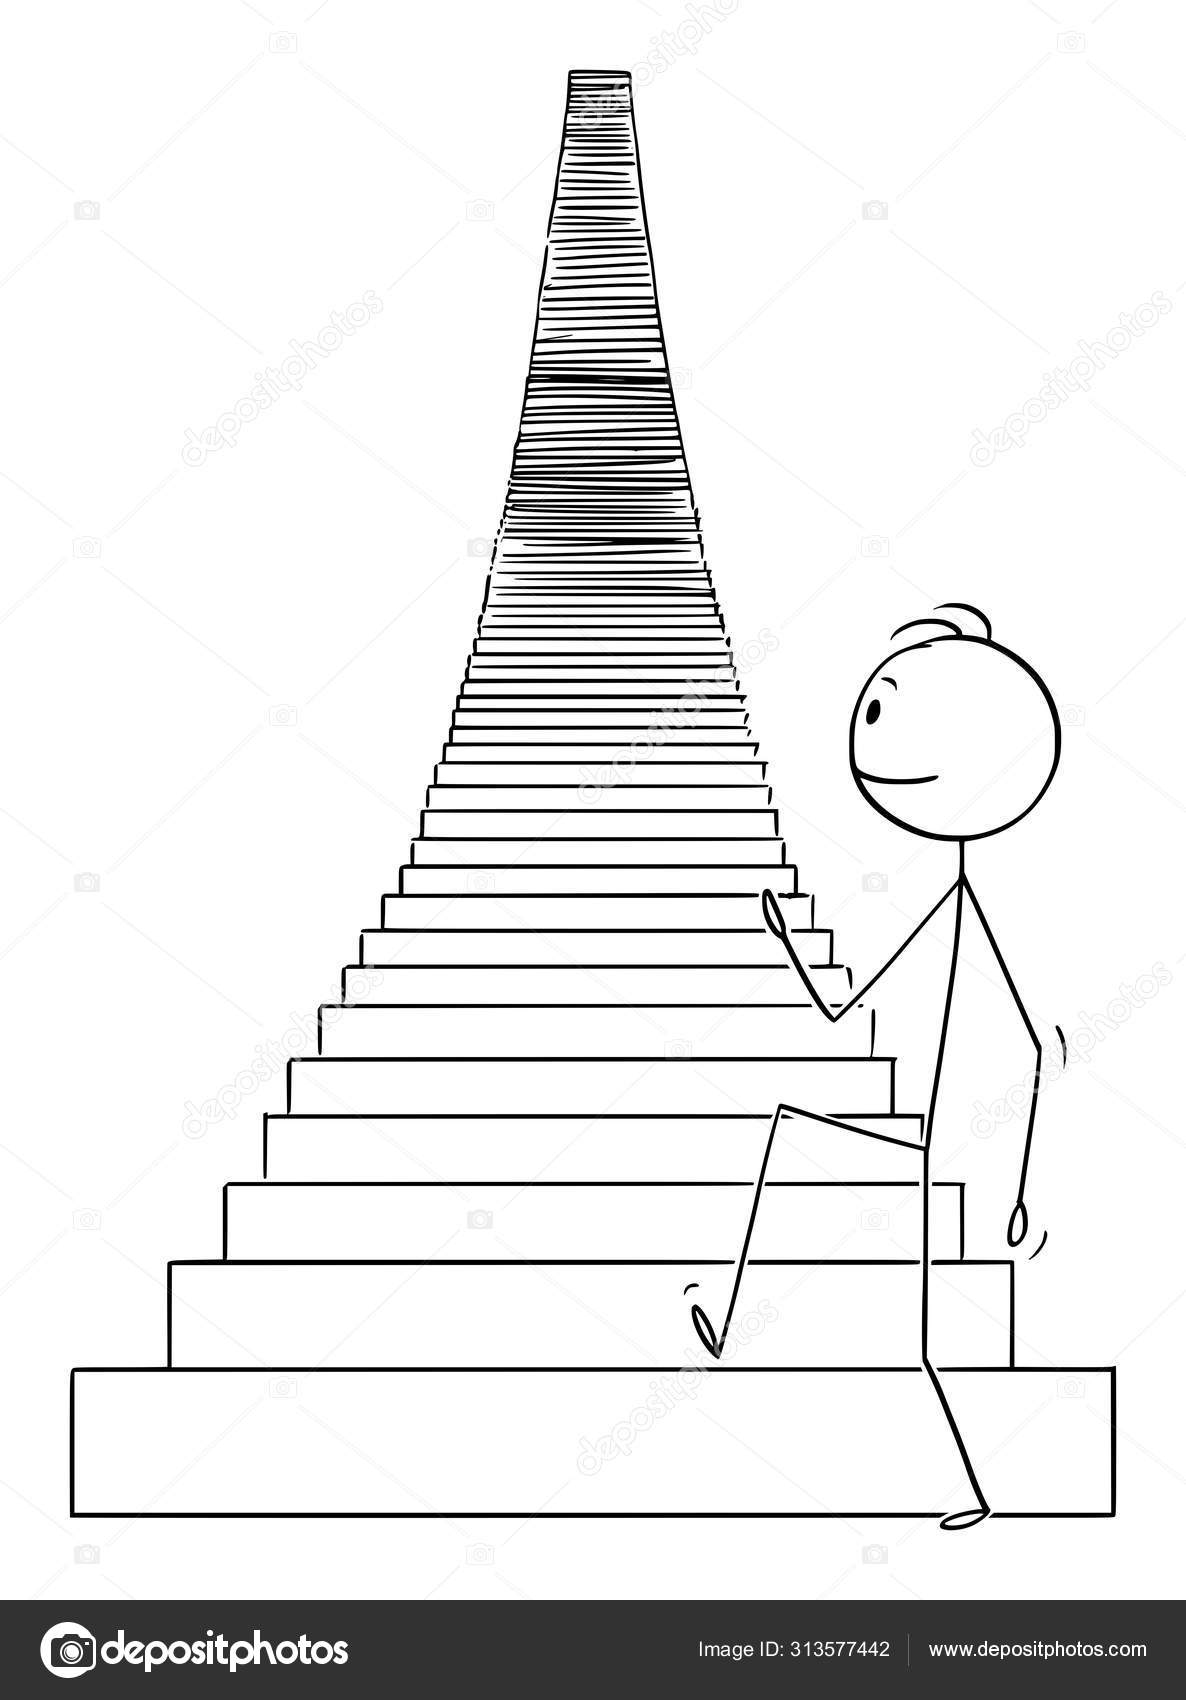 vector cartoon illustration of man or businessman walking up the stairs to heaven or success stock vector c ursus zdeneksasek com 313577442 vector cartoon illustration of man or businessman walking up the stairs to heaven or success stock vector c ursus zdeneksasek com 313577442